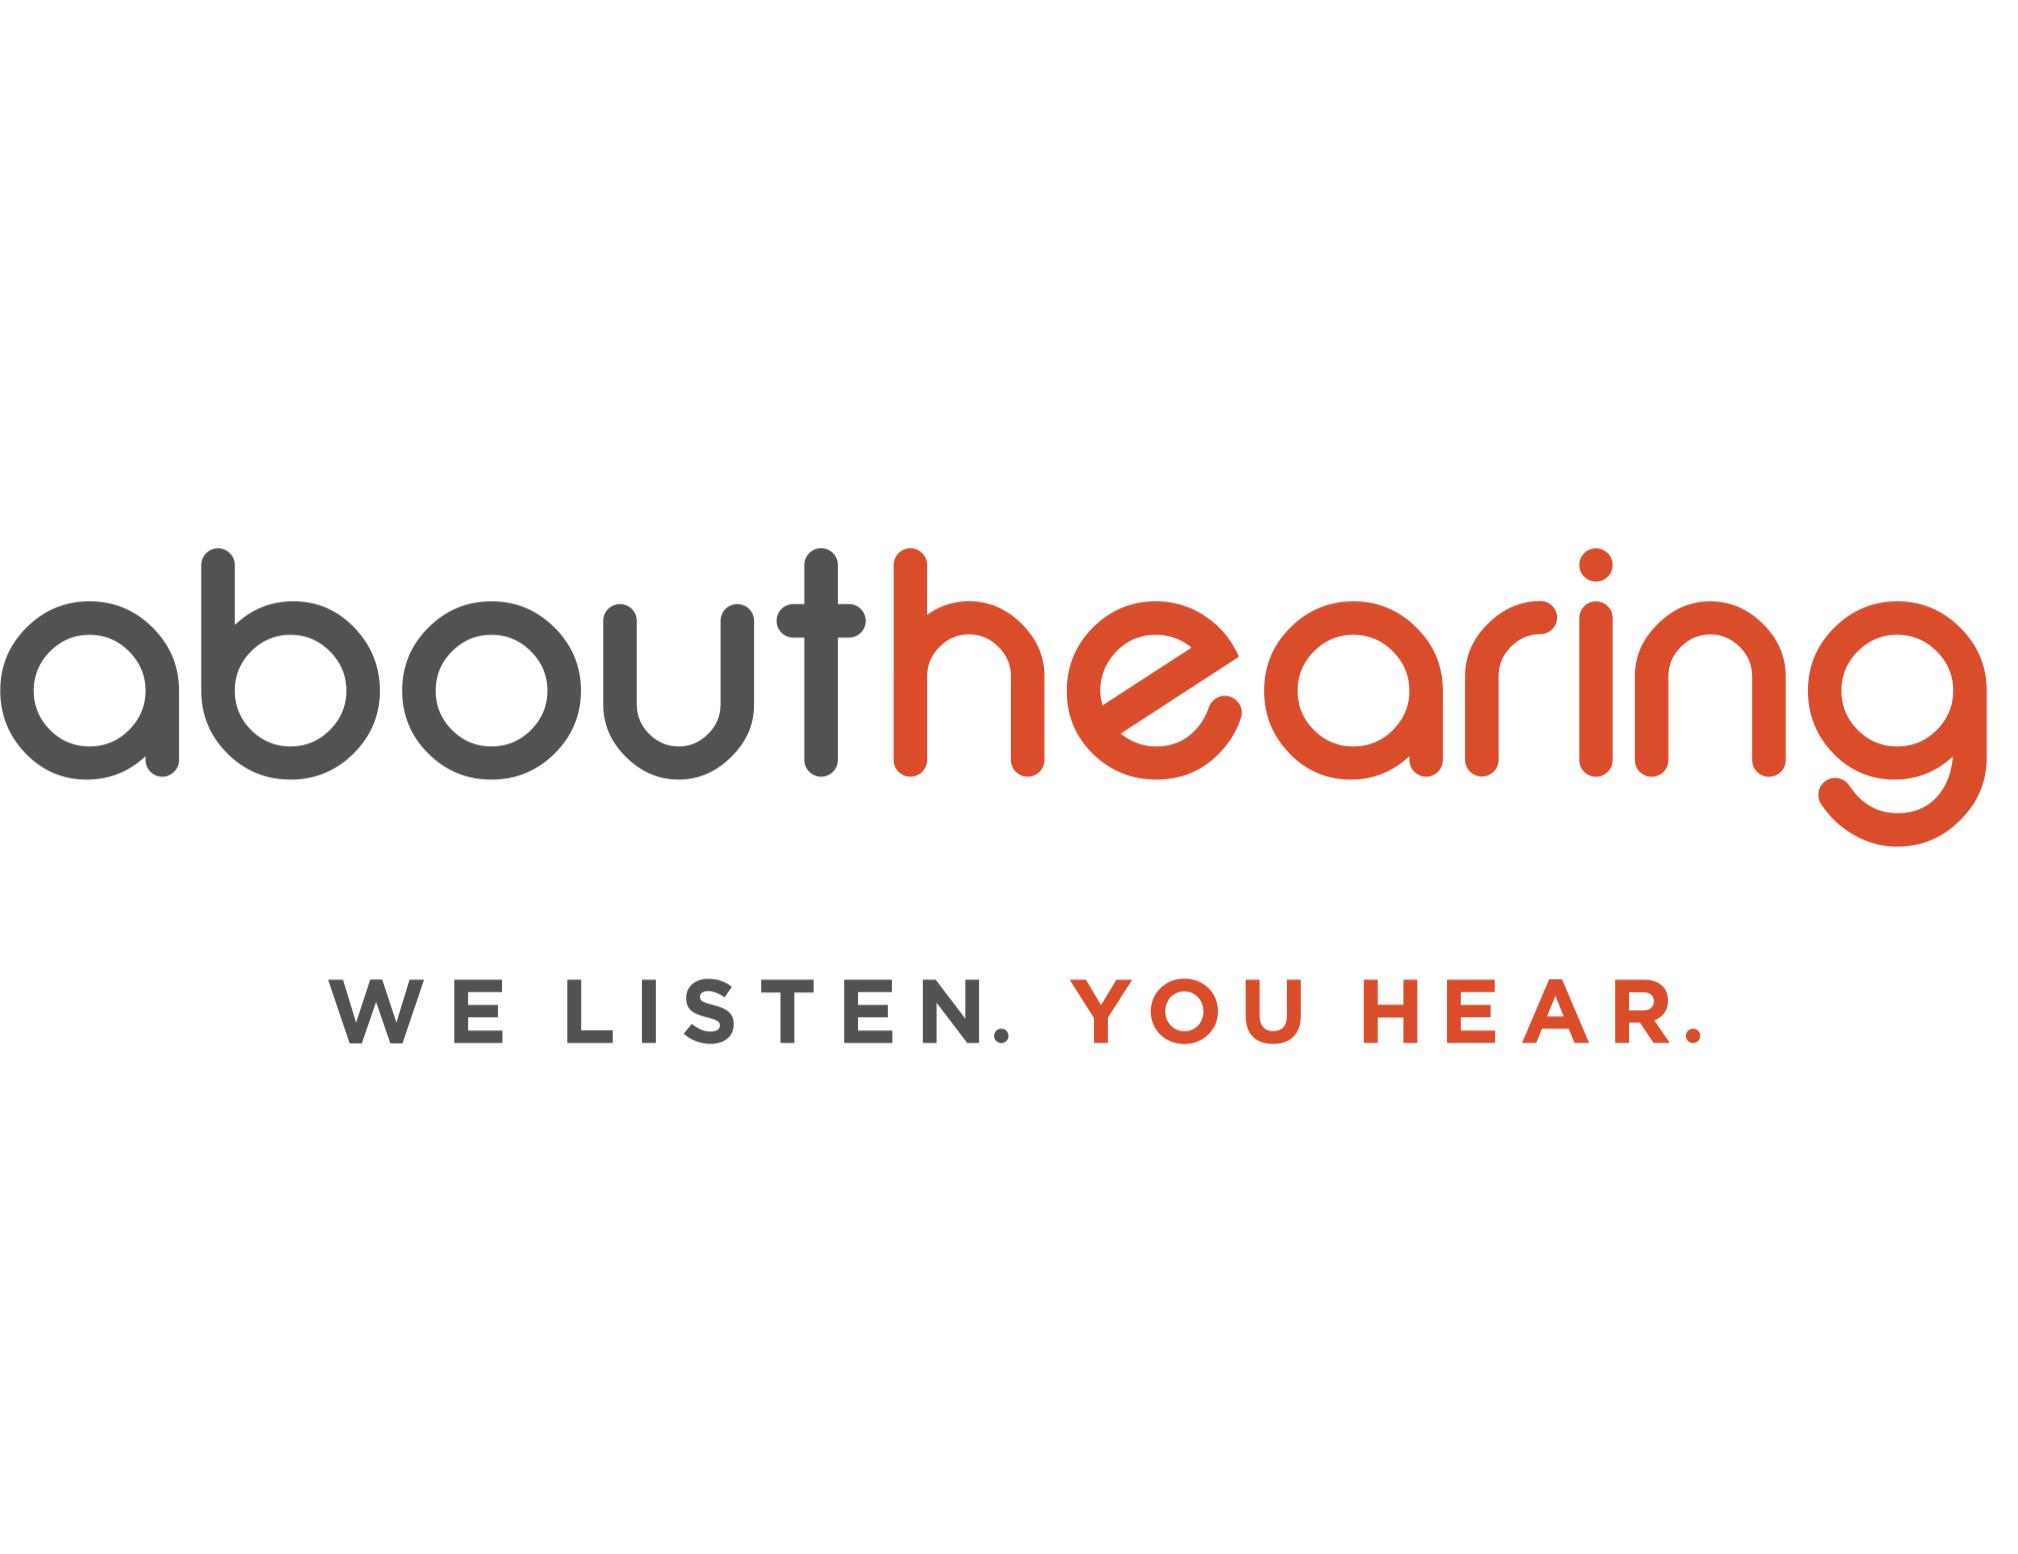 About Hearing